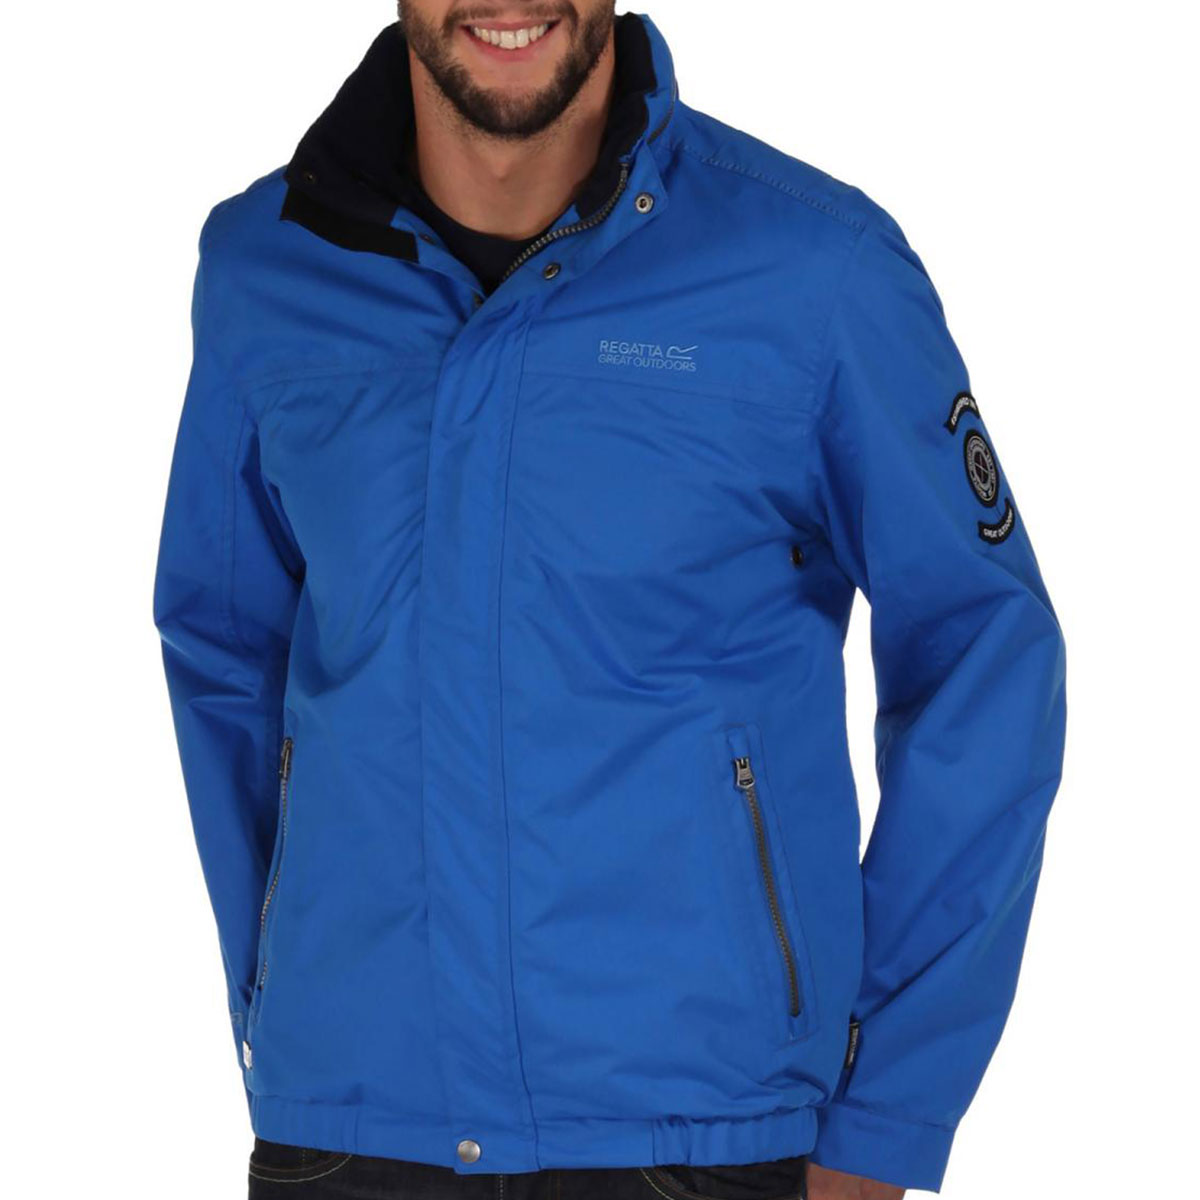 Regatta Mens Moran Waterproof Jacket RMW218 Hooded Rain Coat